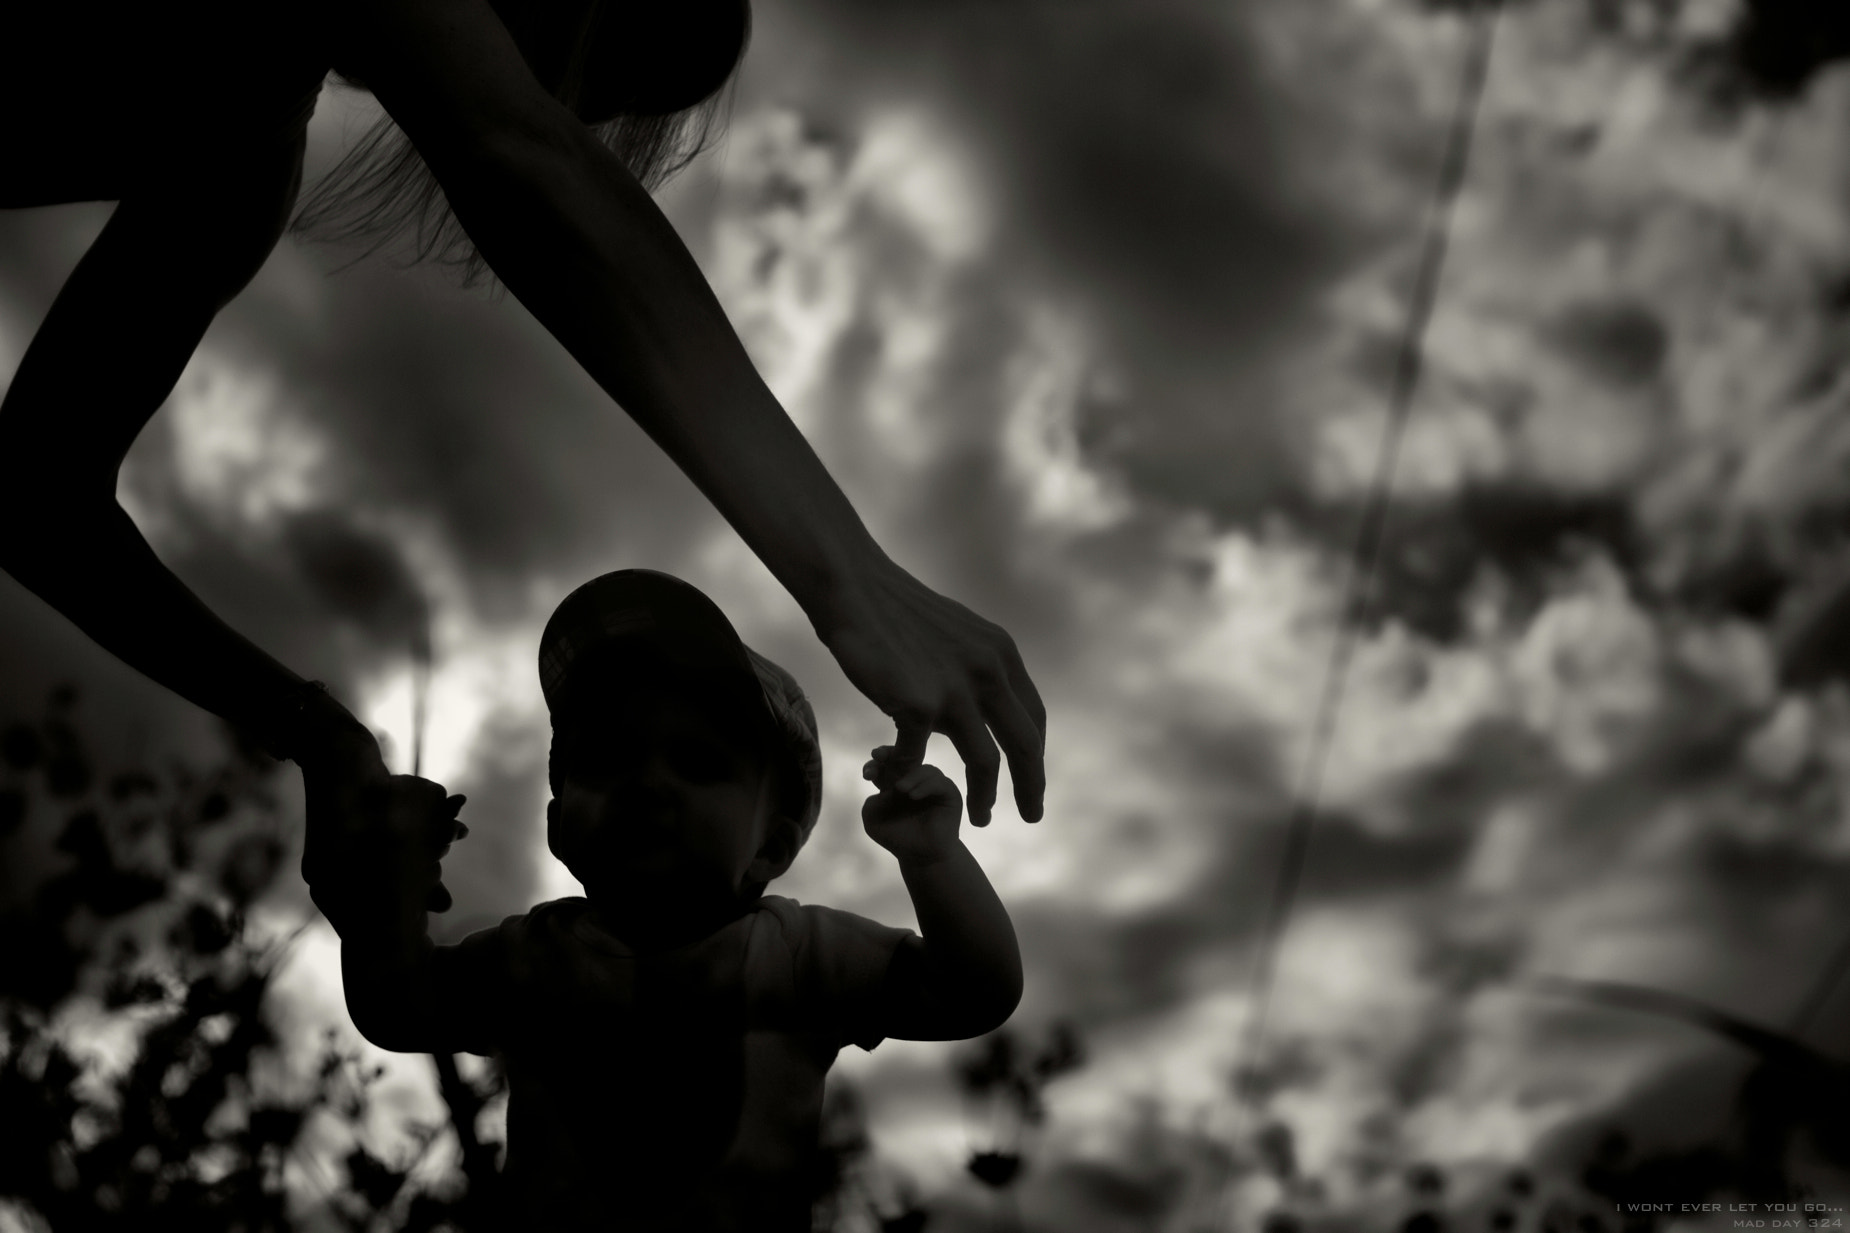 Photograph mad day 324 - won't let you go by kristopher chandroo on 500px